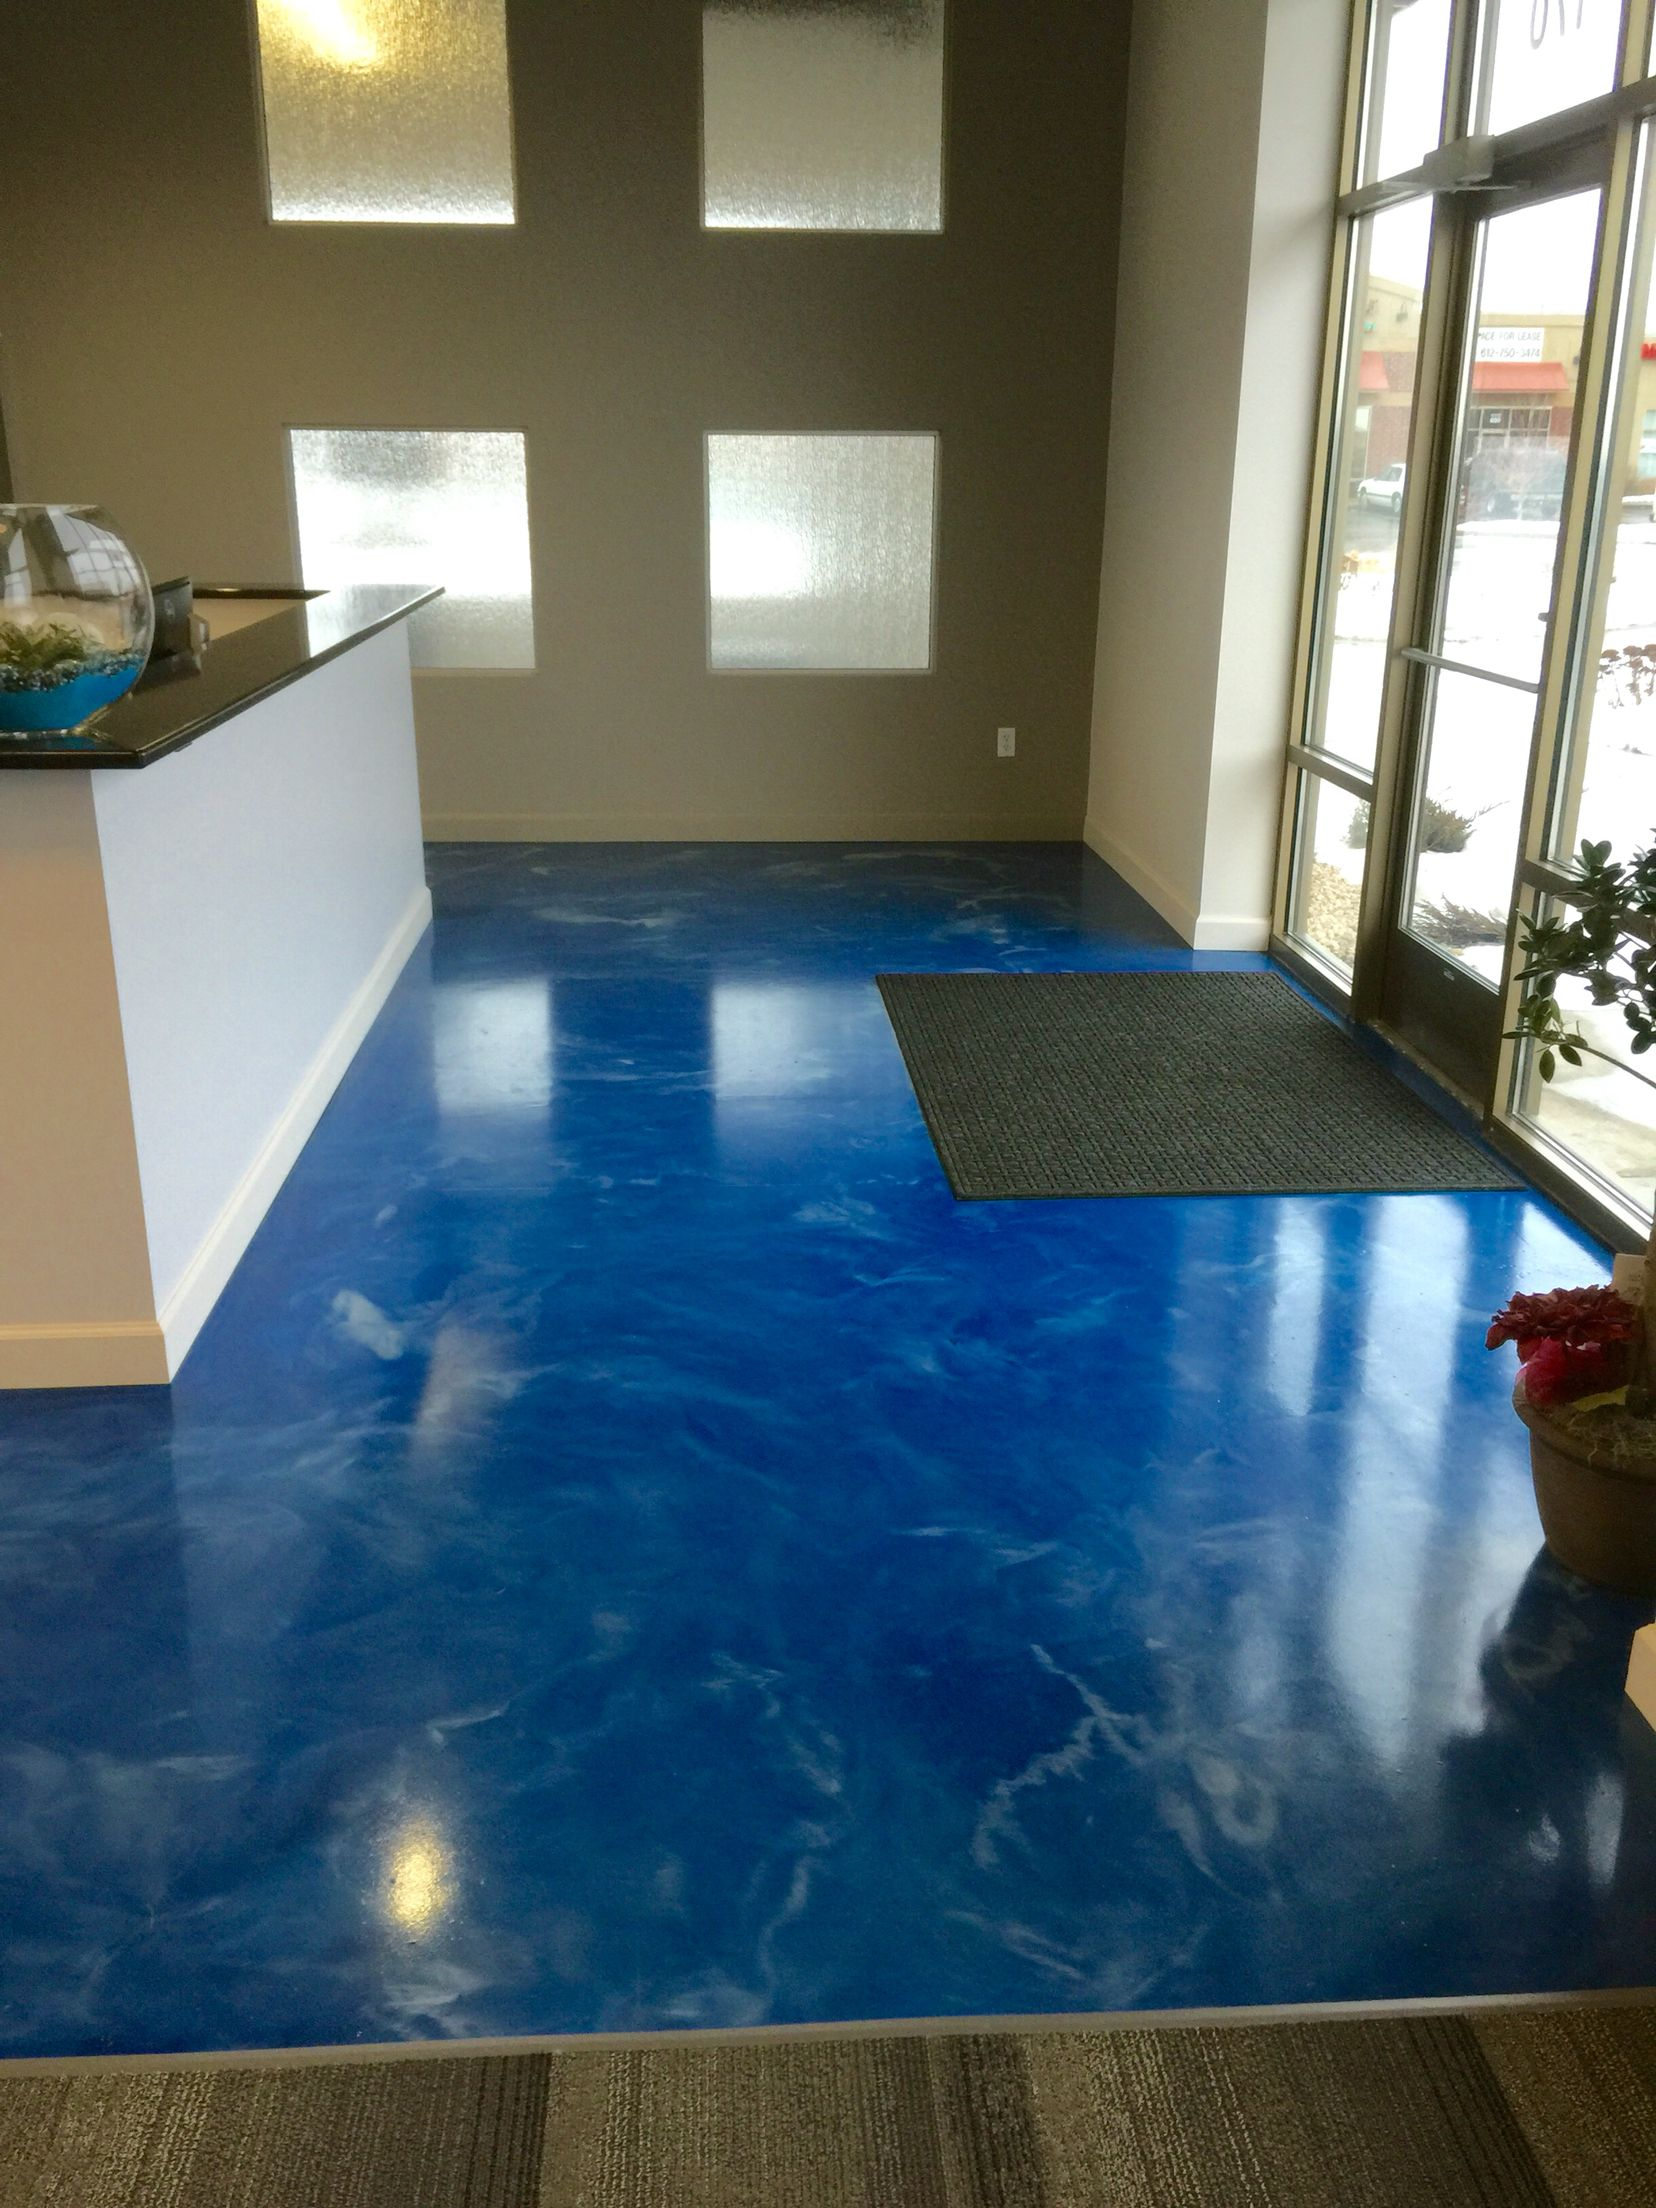 Metallic Epoxy Floor Installed For A Dental Office By Sierra